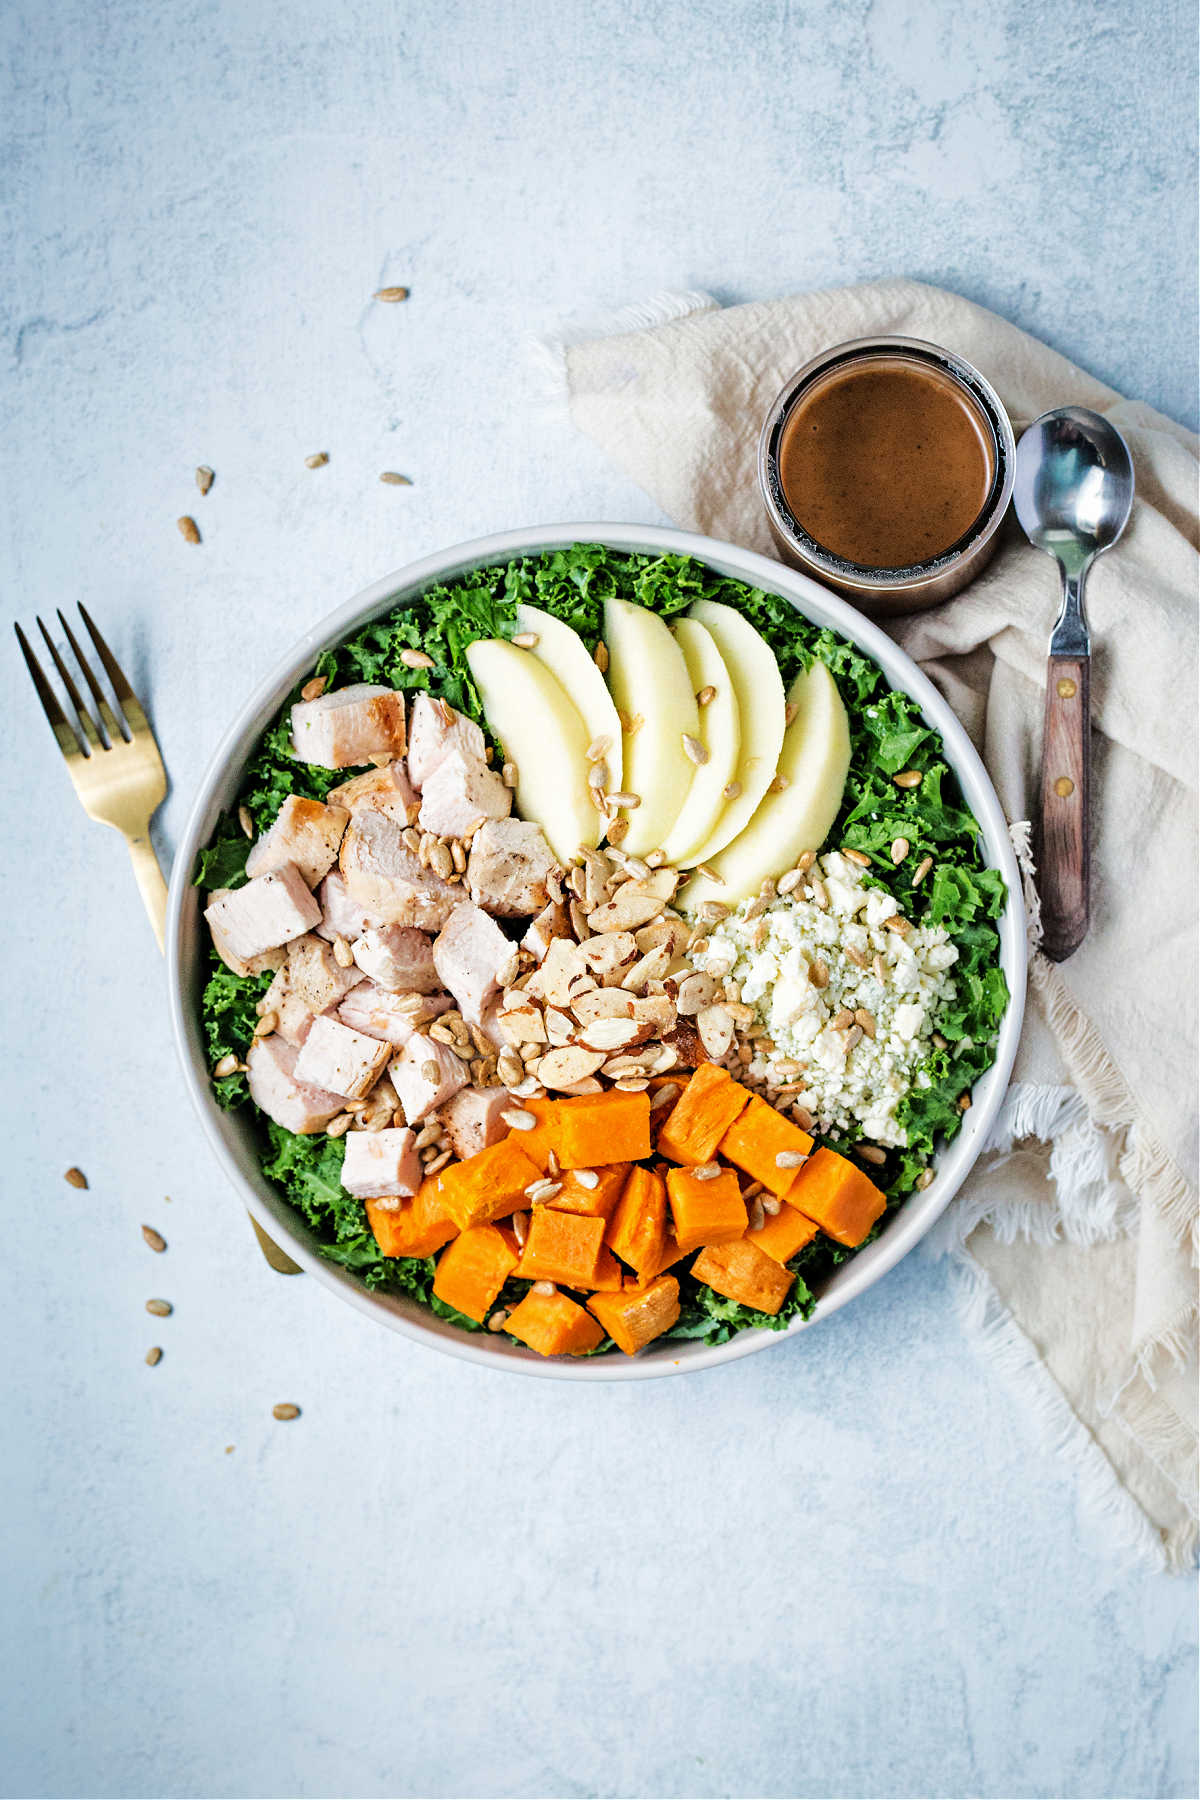 a salad bowl on a table top filled with chopped kale, sweet potatoes, blue cheese, apples, and chicken with a side of balsamic dressing.